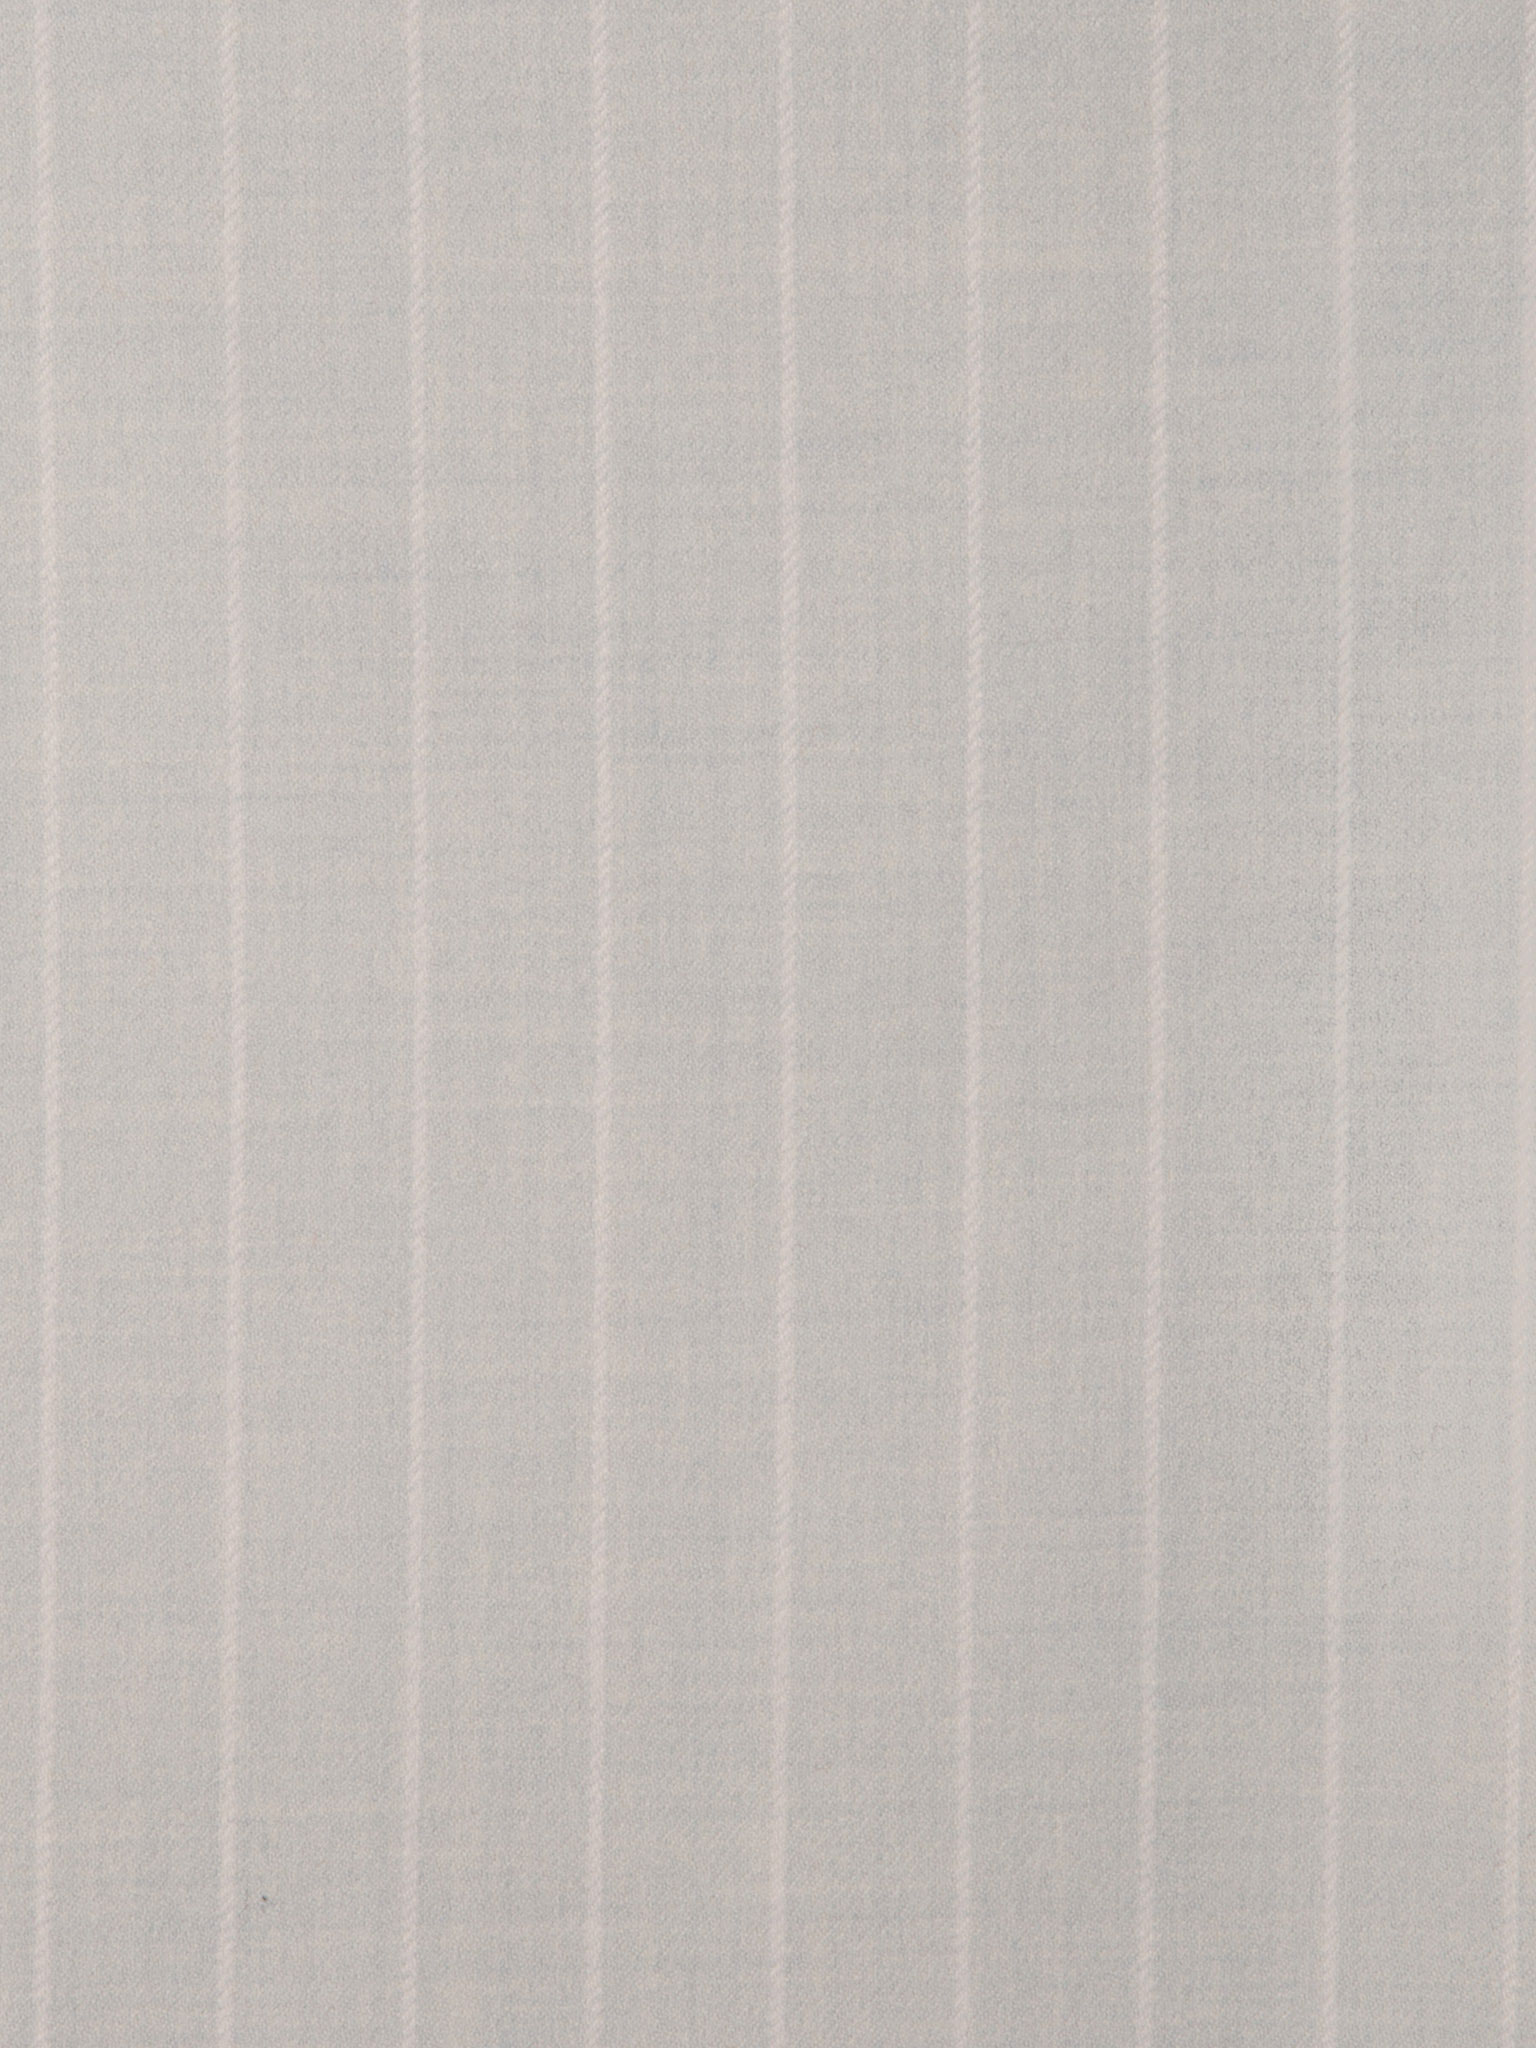 SAVILE ROW CHALK STRIPE DE12066